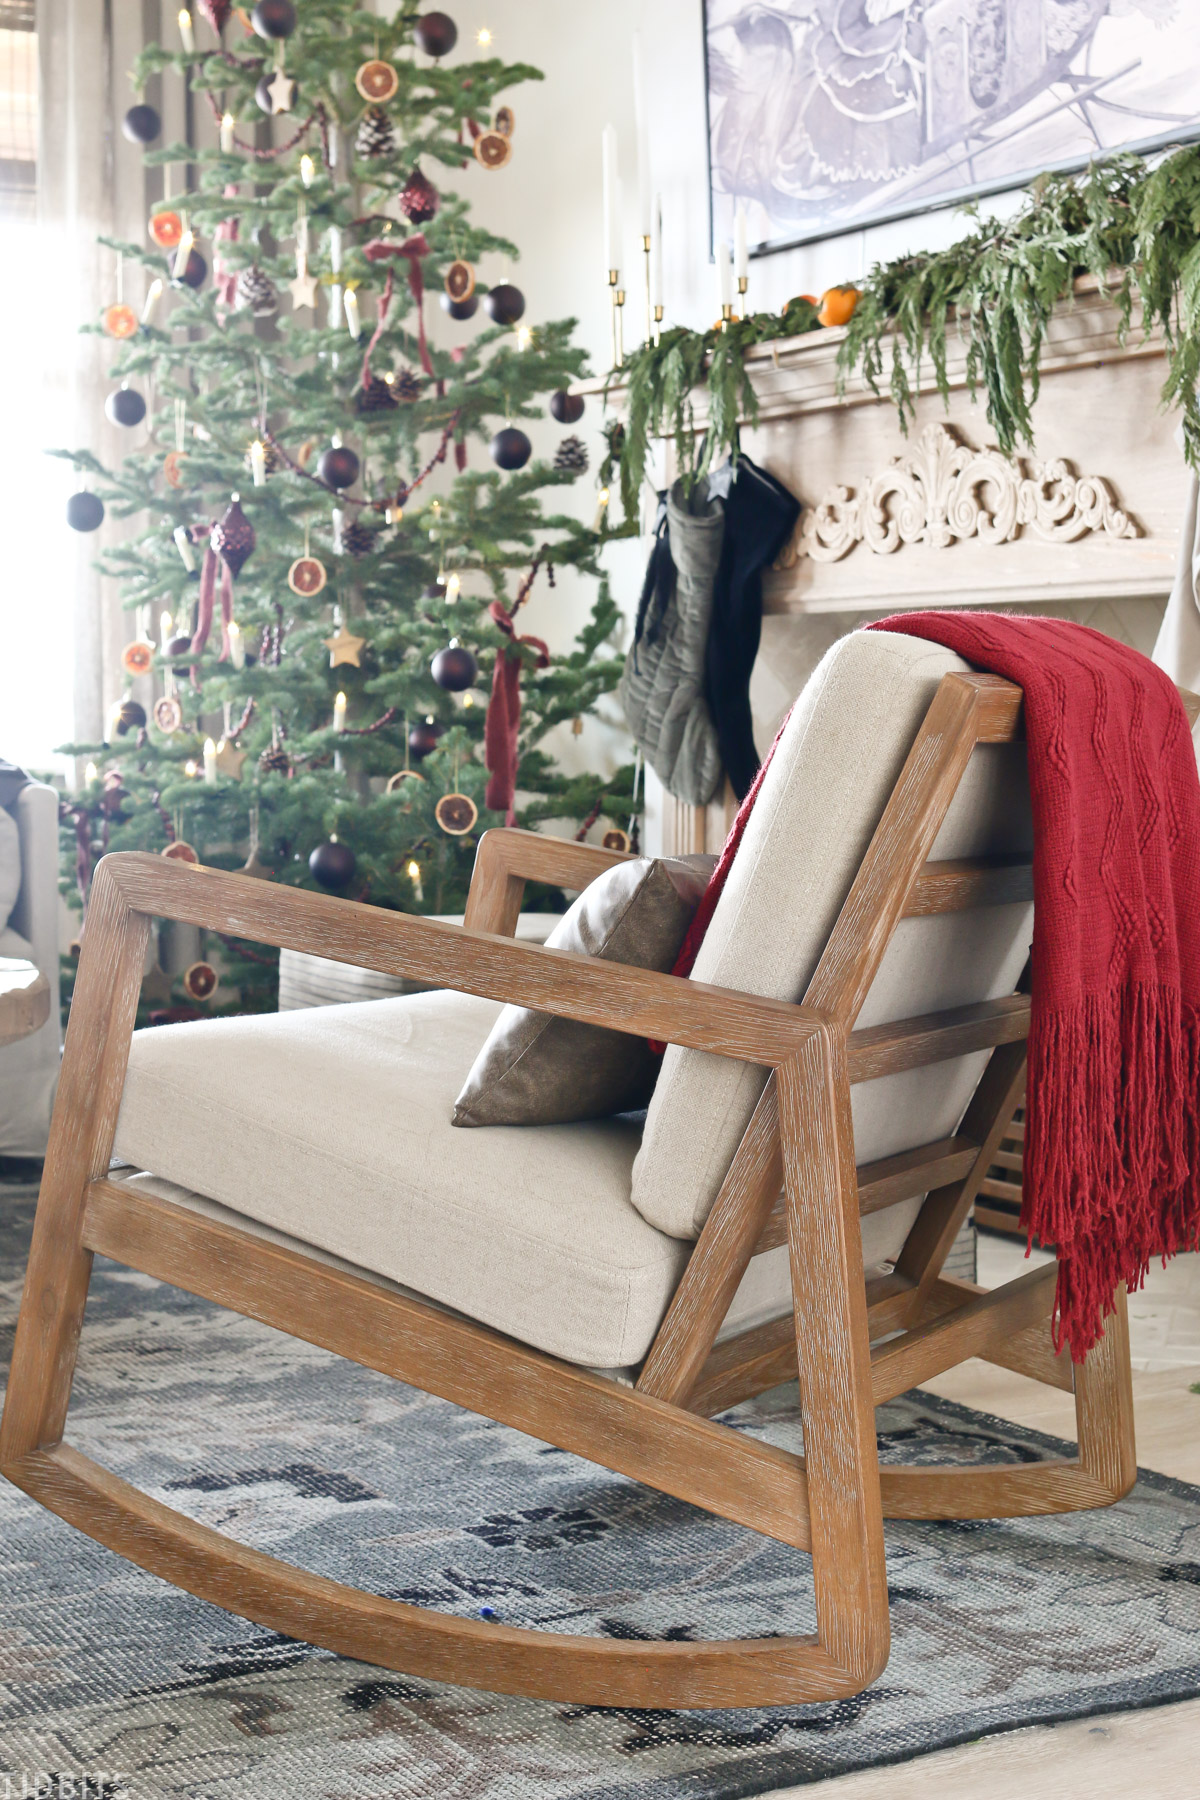 rocking chair in living room with Christmas tree in background and Christmas decorations on the mantel